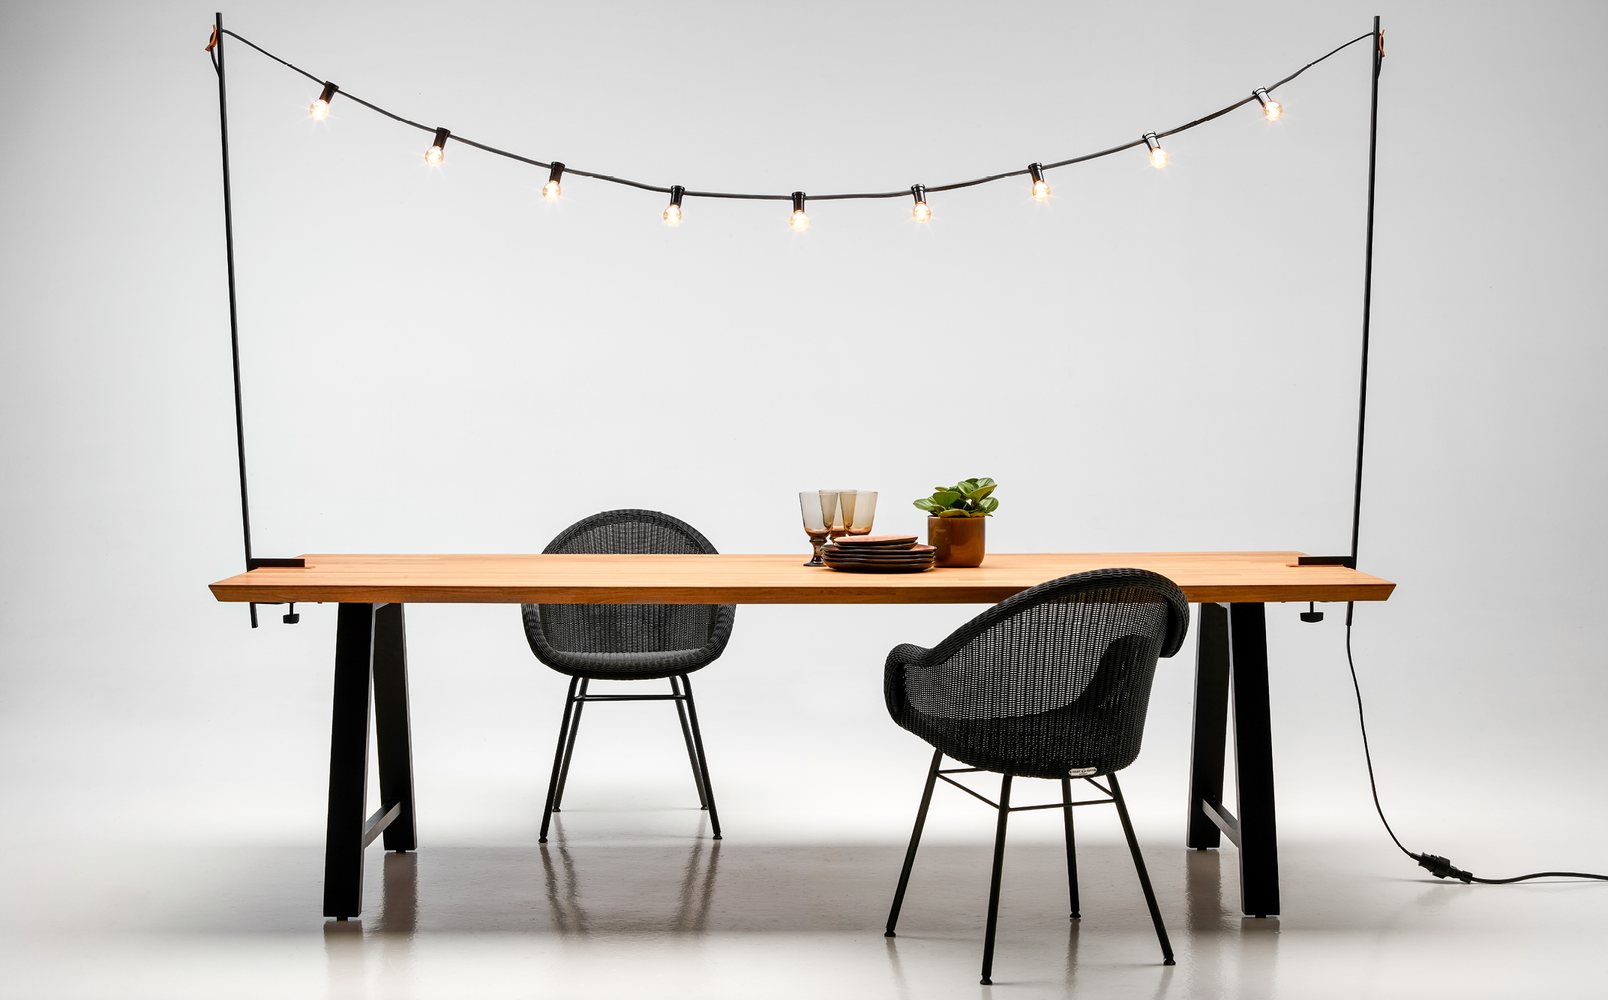 Vincent-Sheppar-Matteo-dining-table-Light-my-table-Edgard-dining-chair-steel-A-base